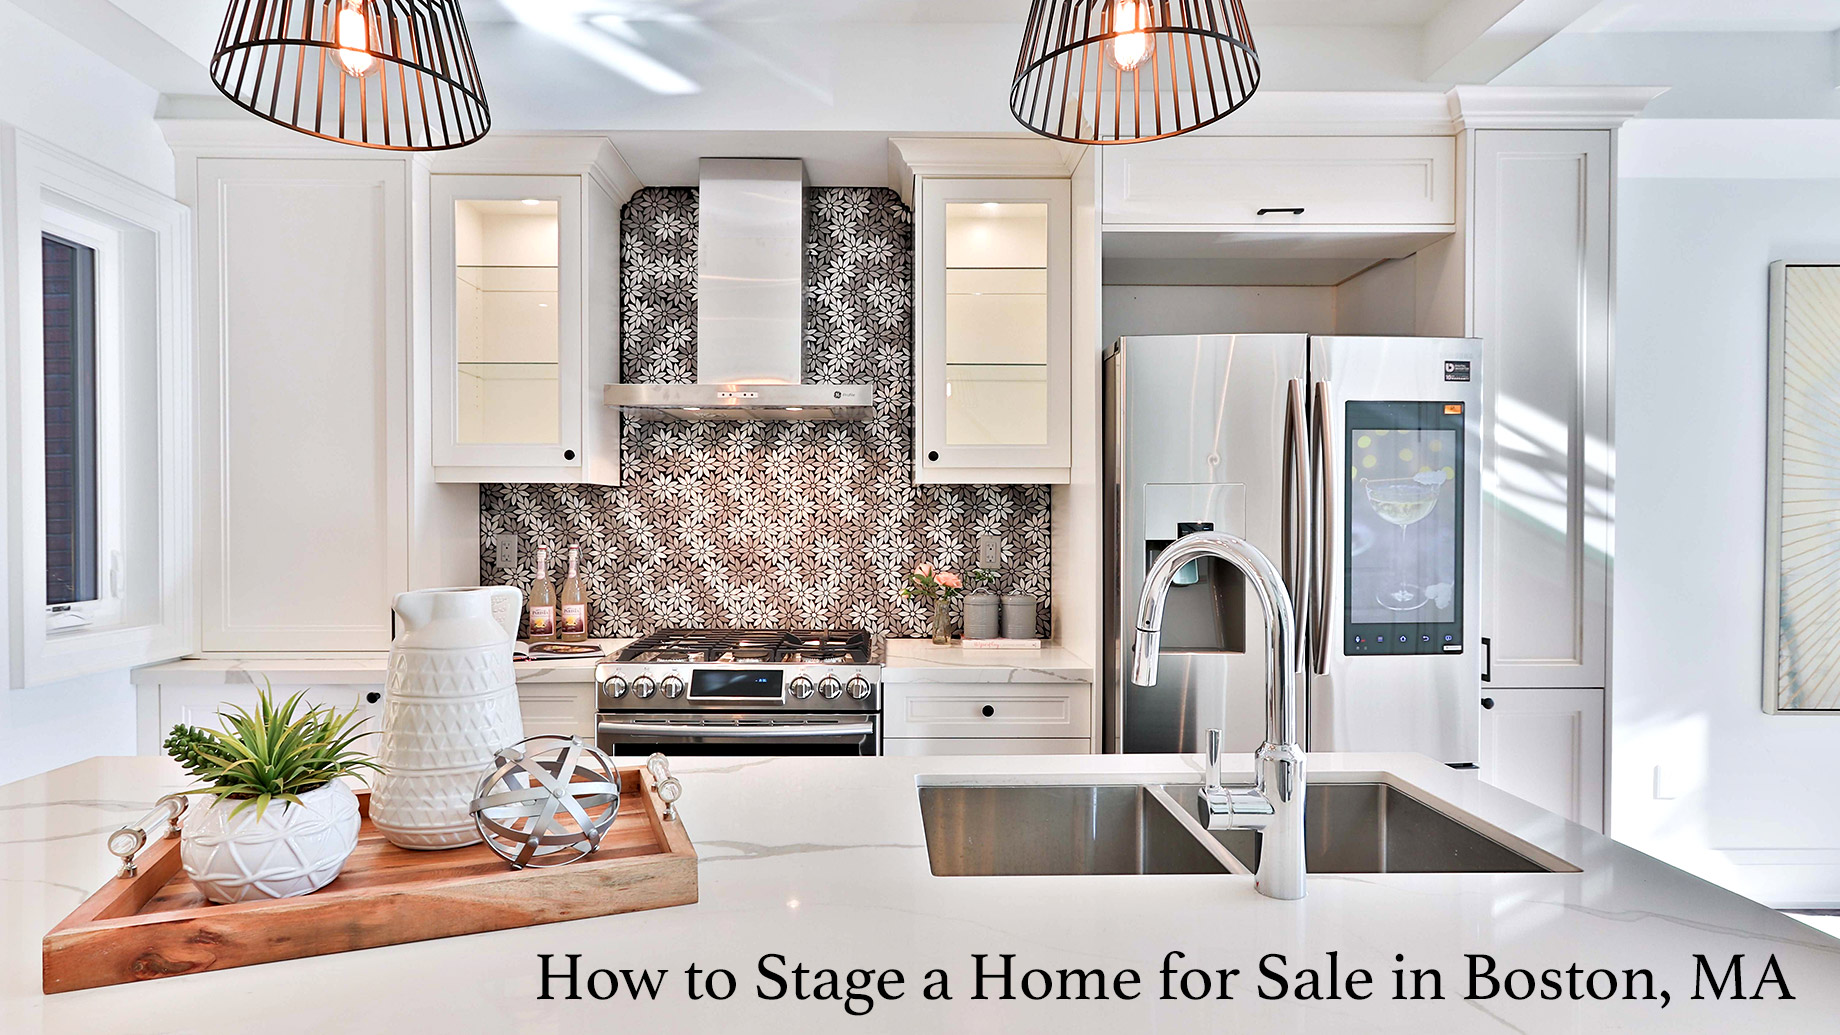 How to Stage a Home for Sale in Boston, MA